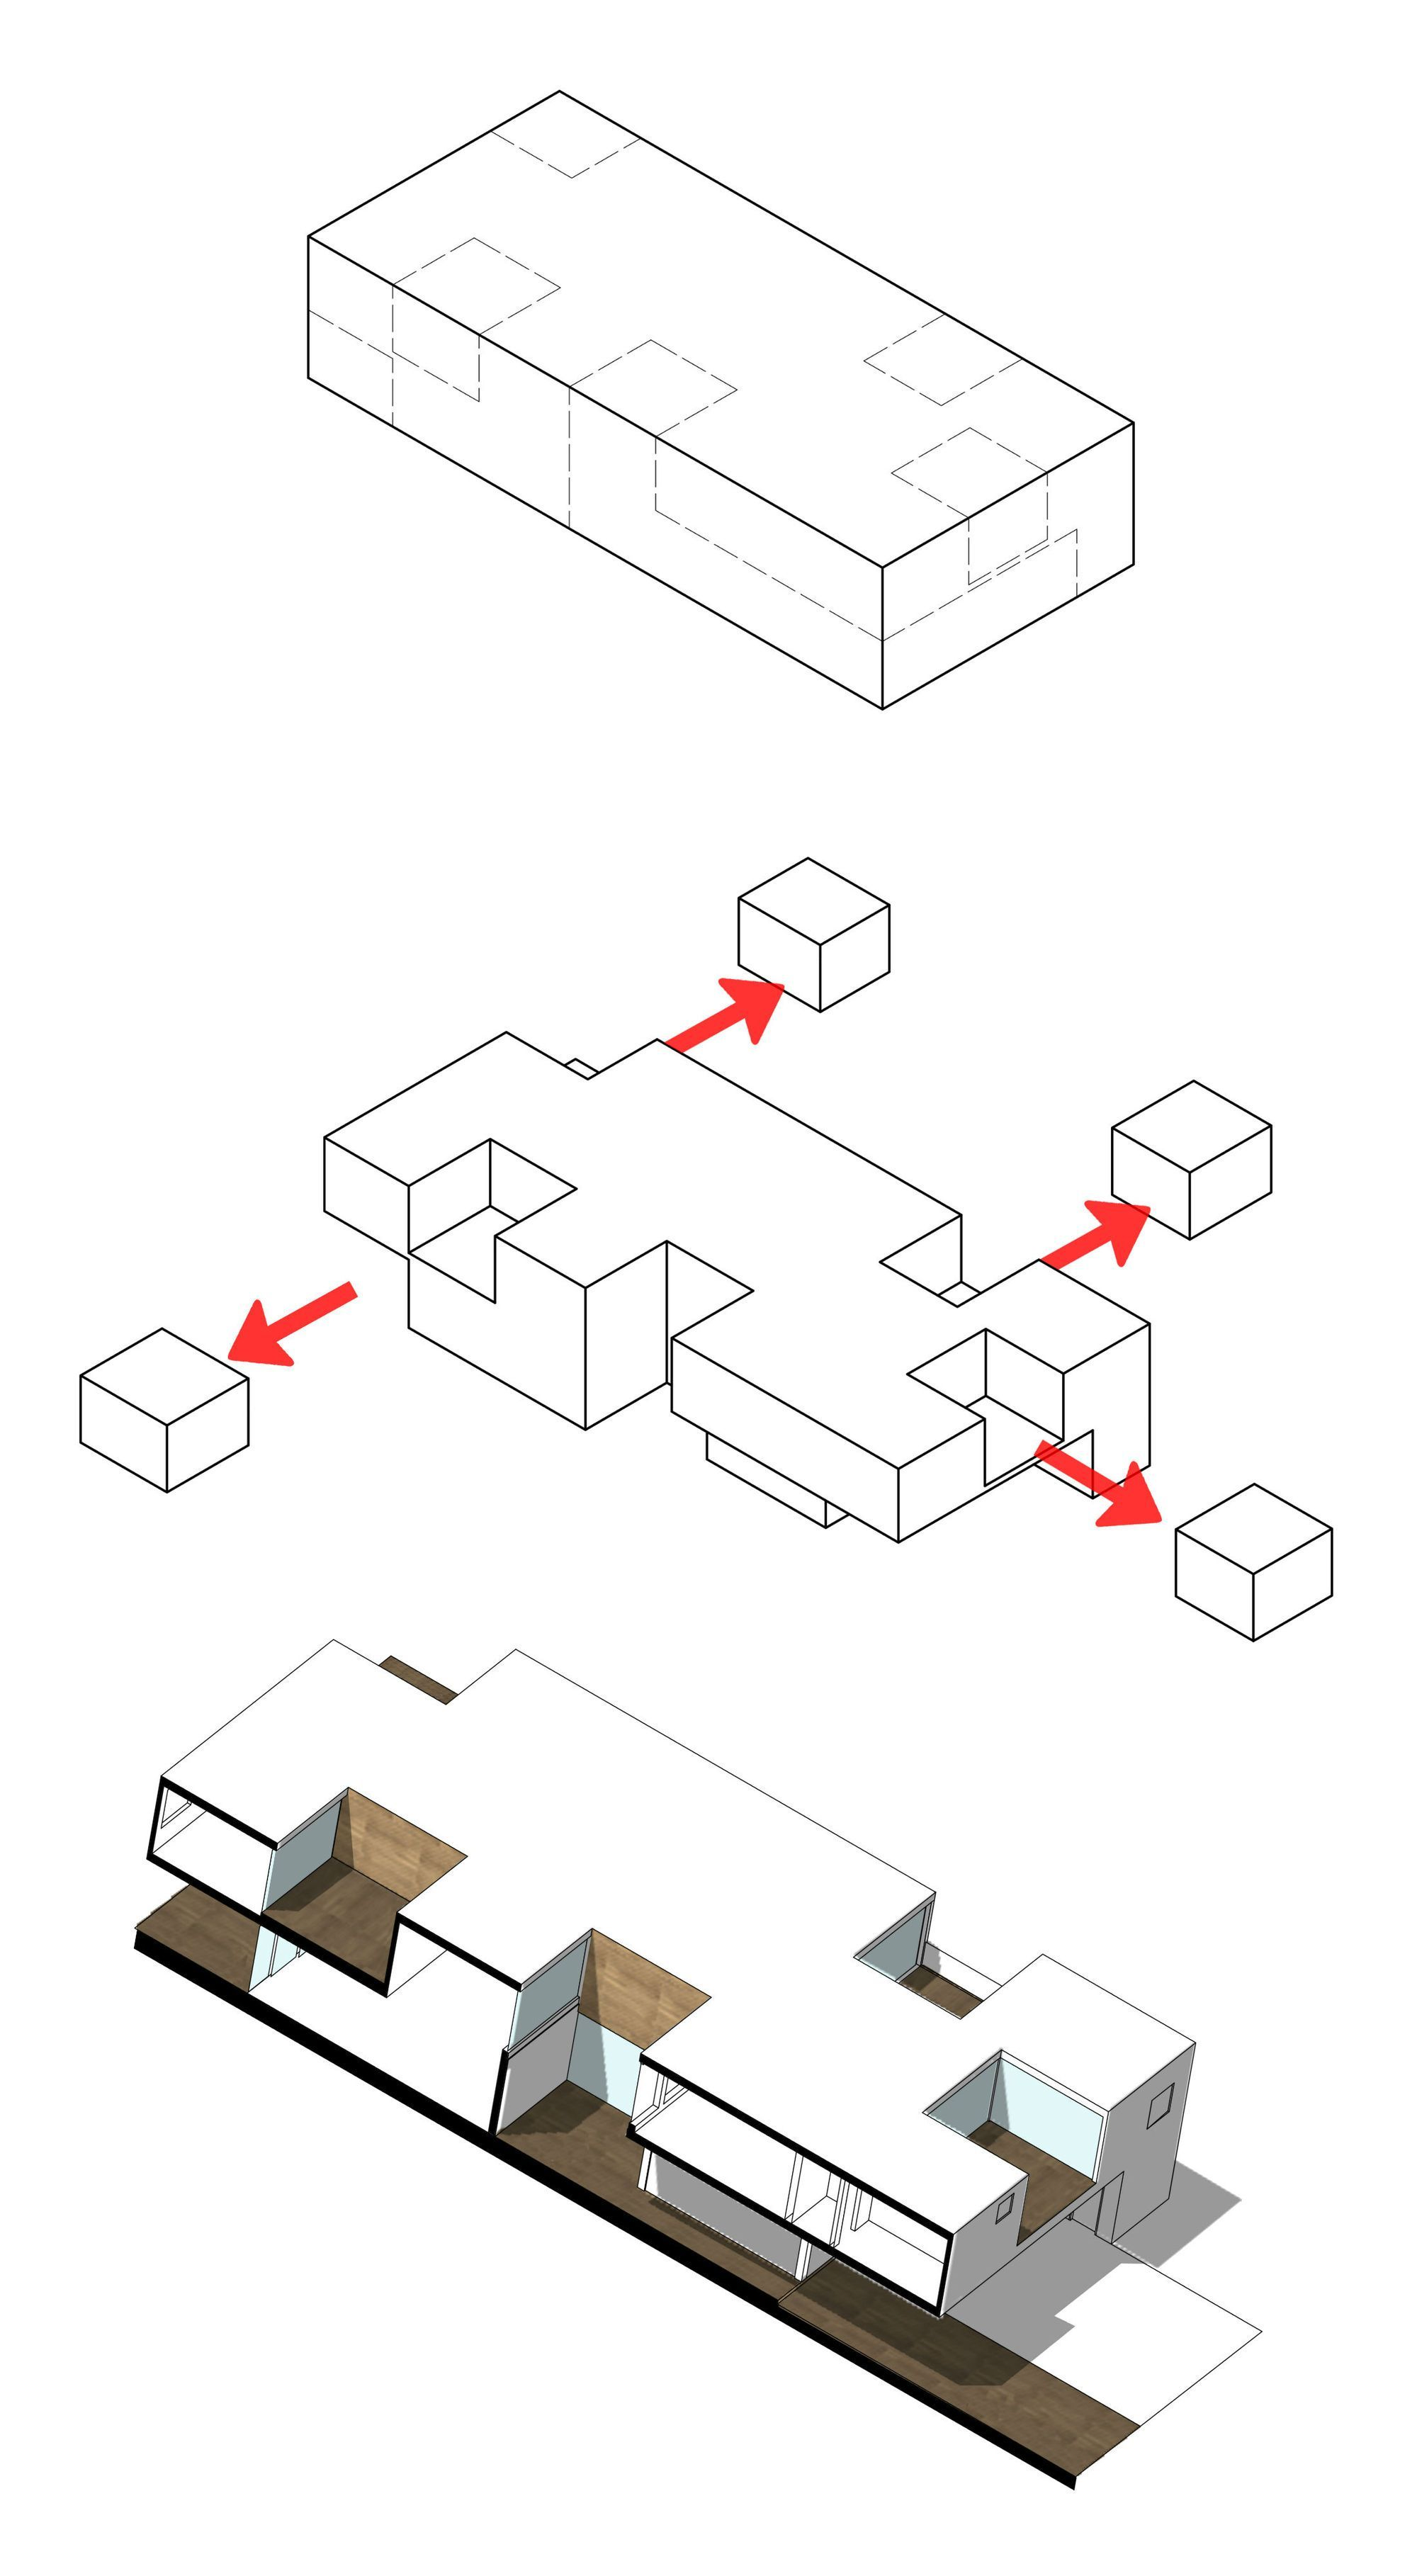 Image 21 Of 26 From Gallery Of Subtracted House Seinfeld Arquitectos Diagram